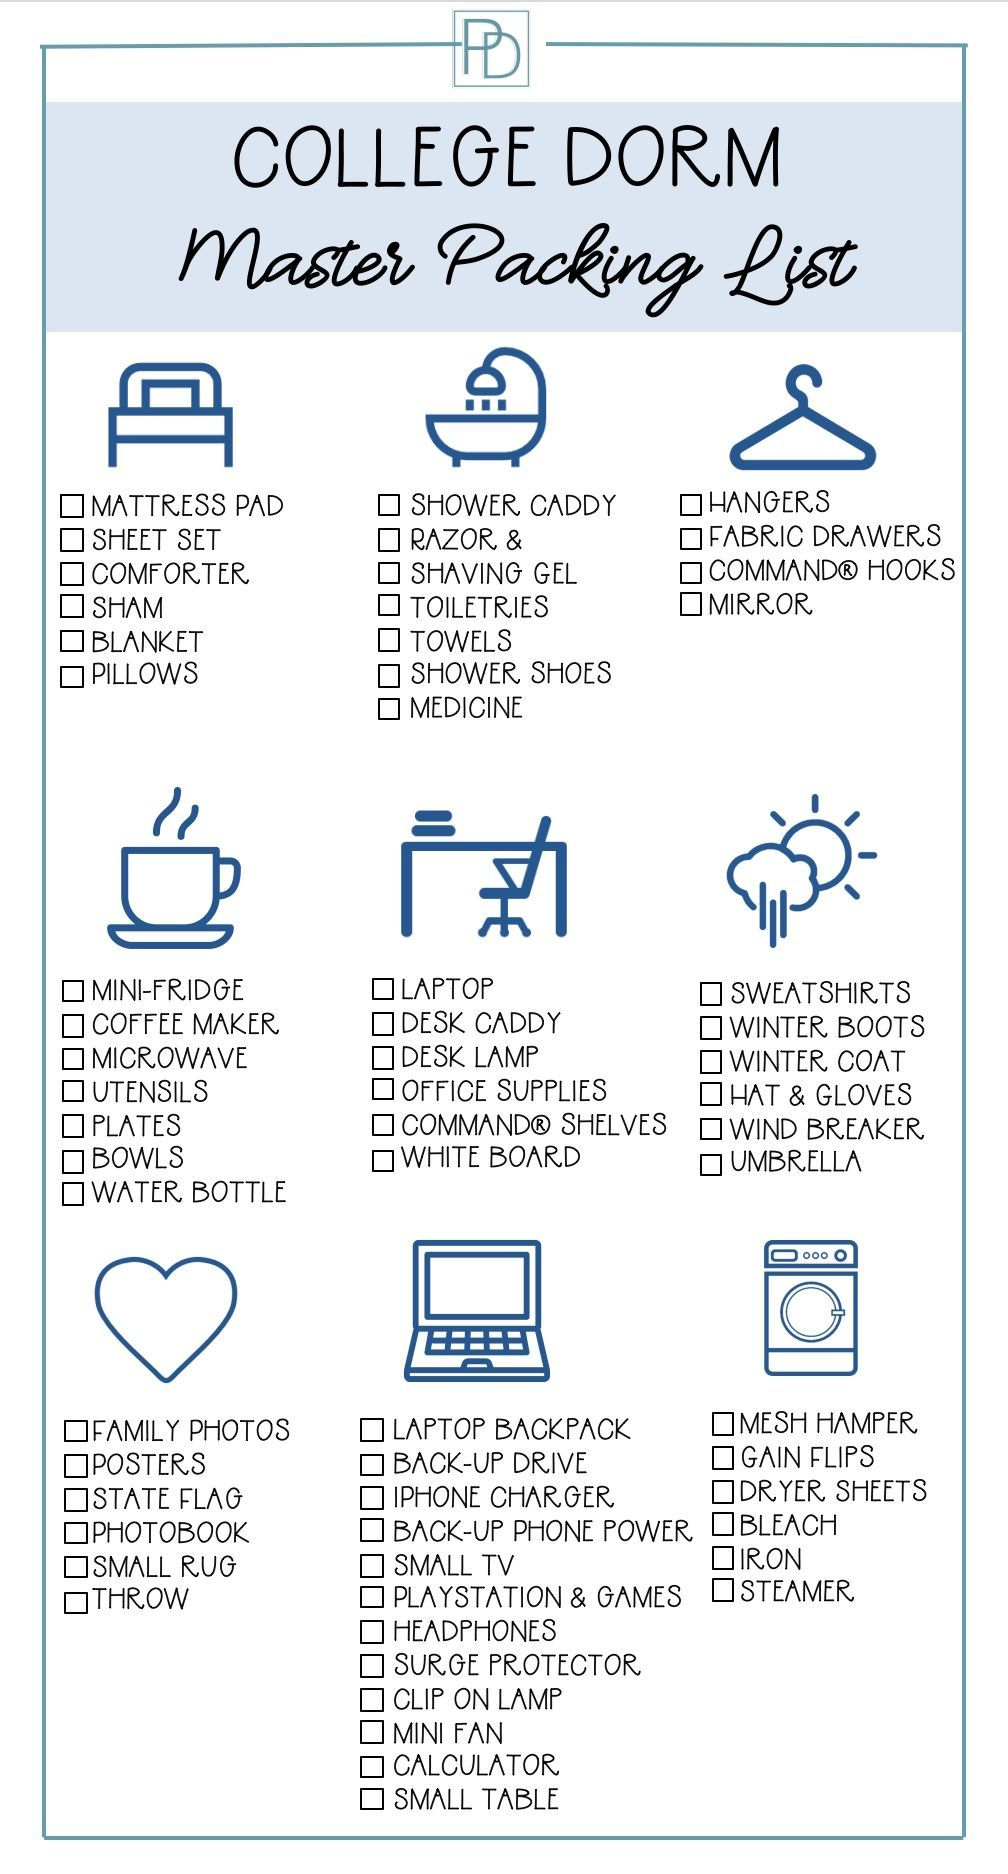 What You Need for College Dorm Life #dormroomideasforguys College dorm master packing list to help you prepare for and buy what is needed for a freshman's door room. Organized by category and printable to take with you shopping for dorm room supplies. #freshmandorm #dormdecor #collegedorm #collegepacking #guideroomguide #porchdaydreamer #collegedormroomideas